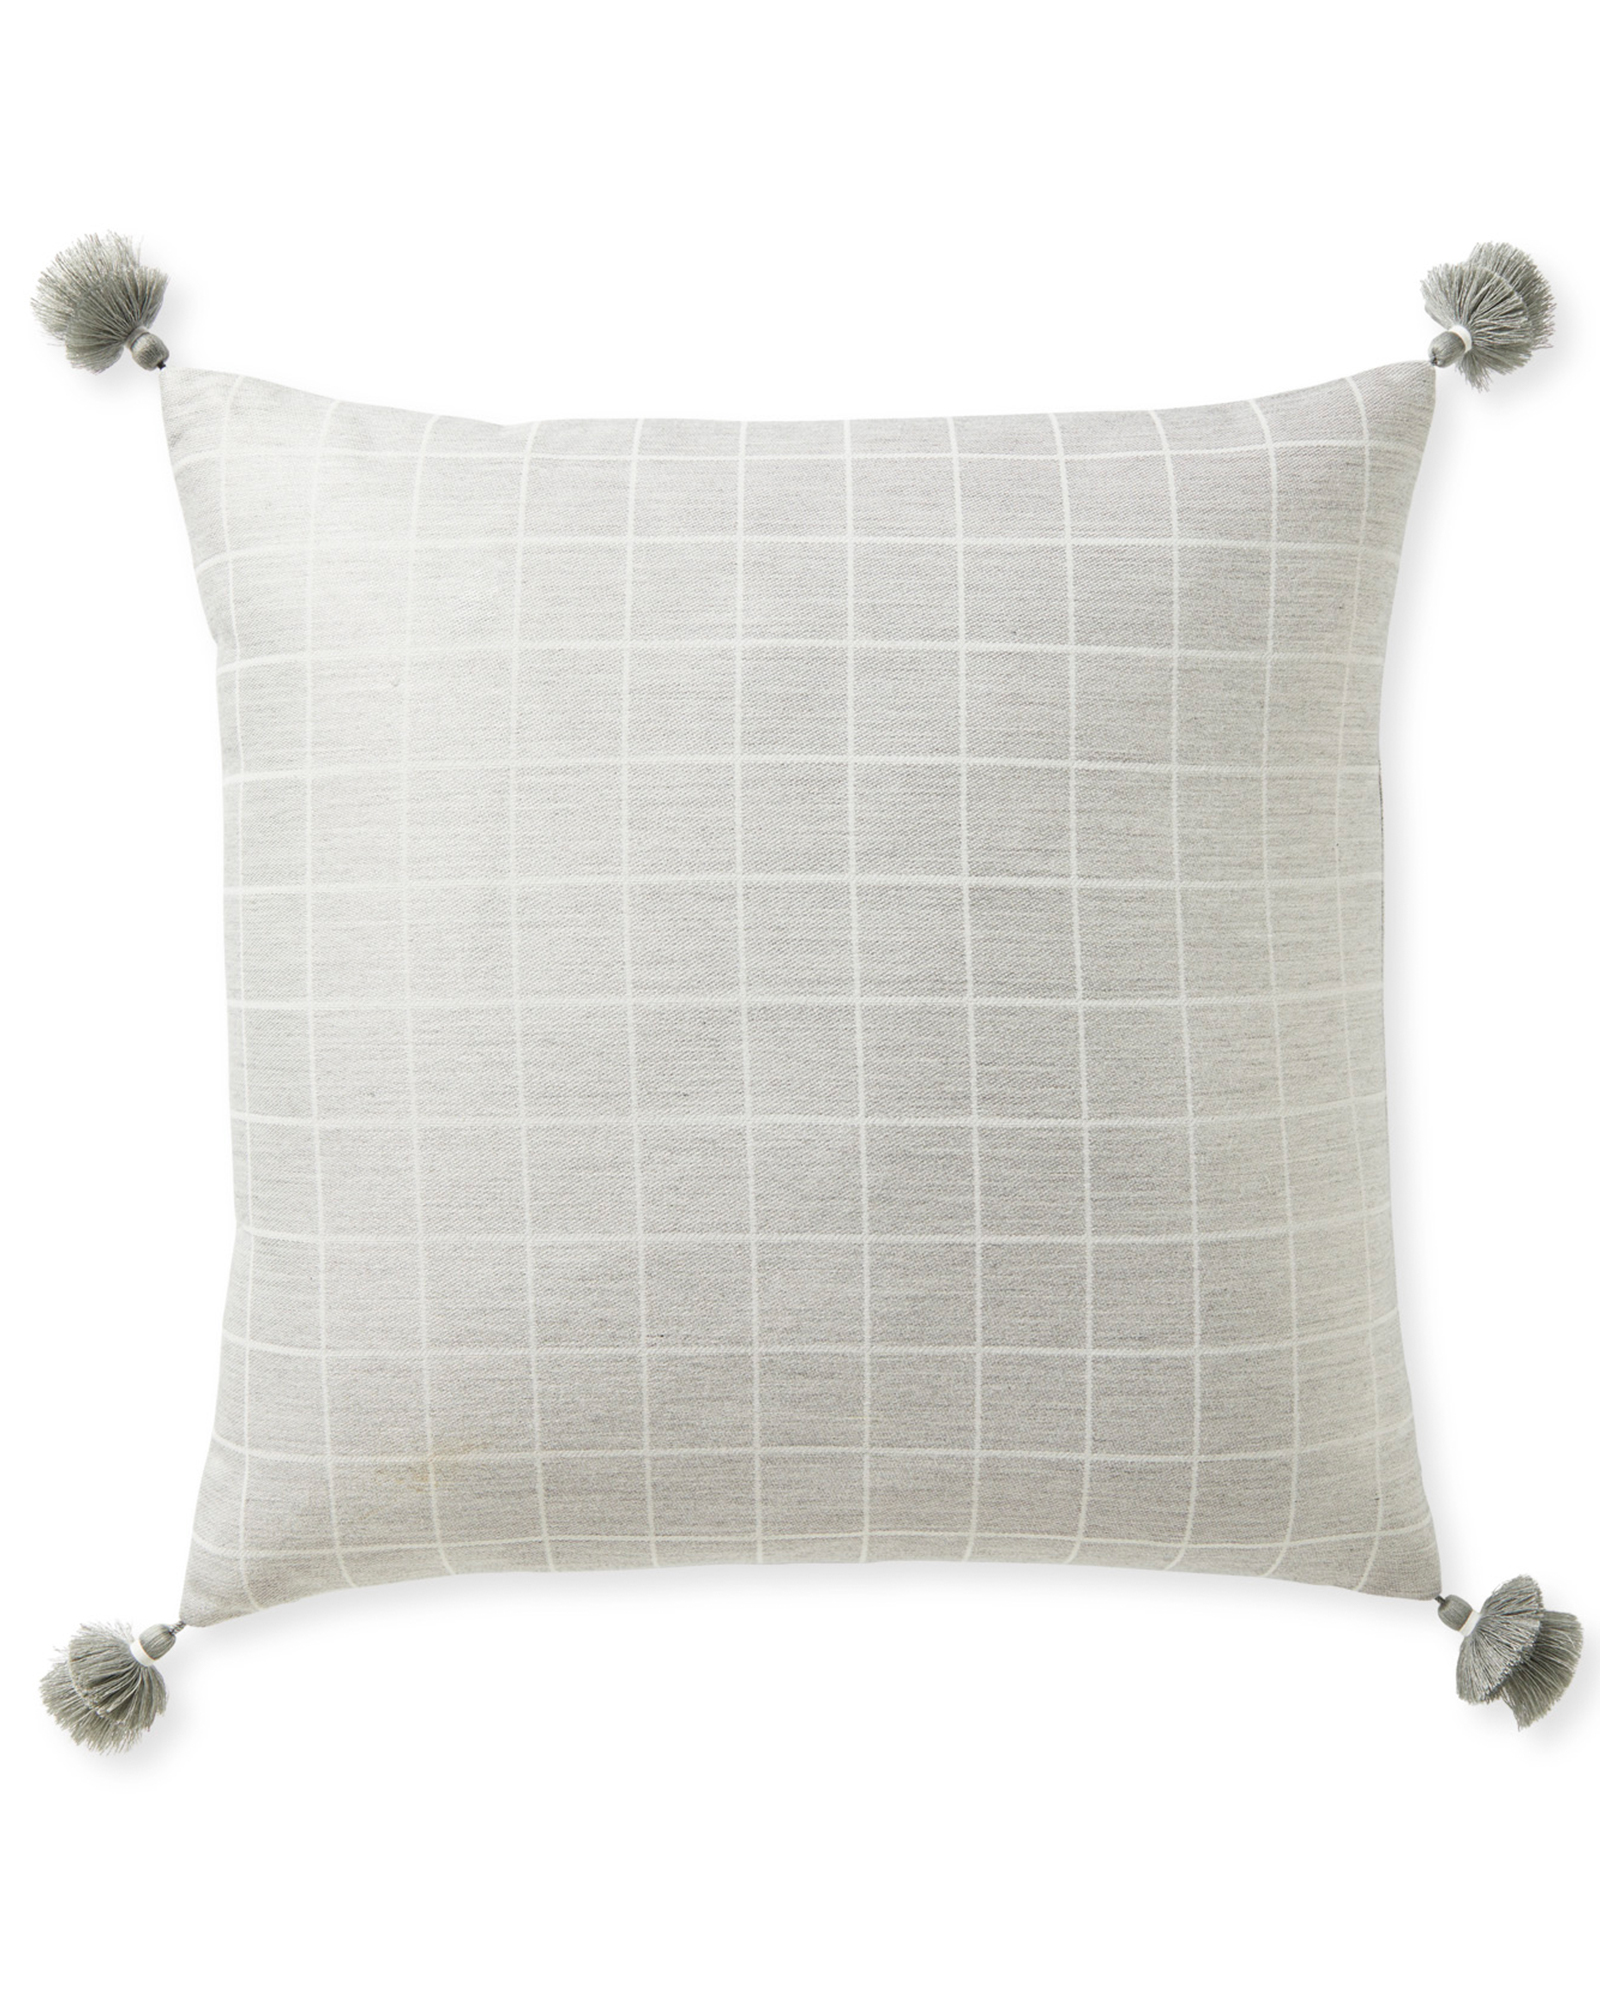 Sunbrella® Mayne Pillow Cover, Fog